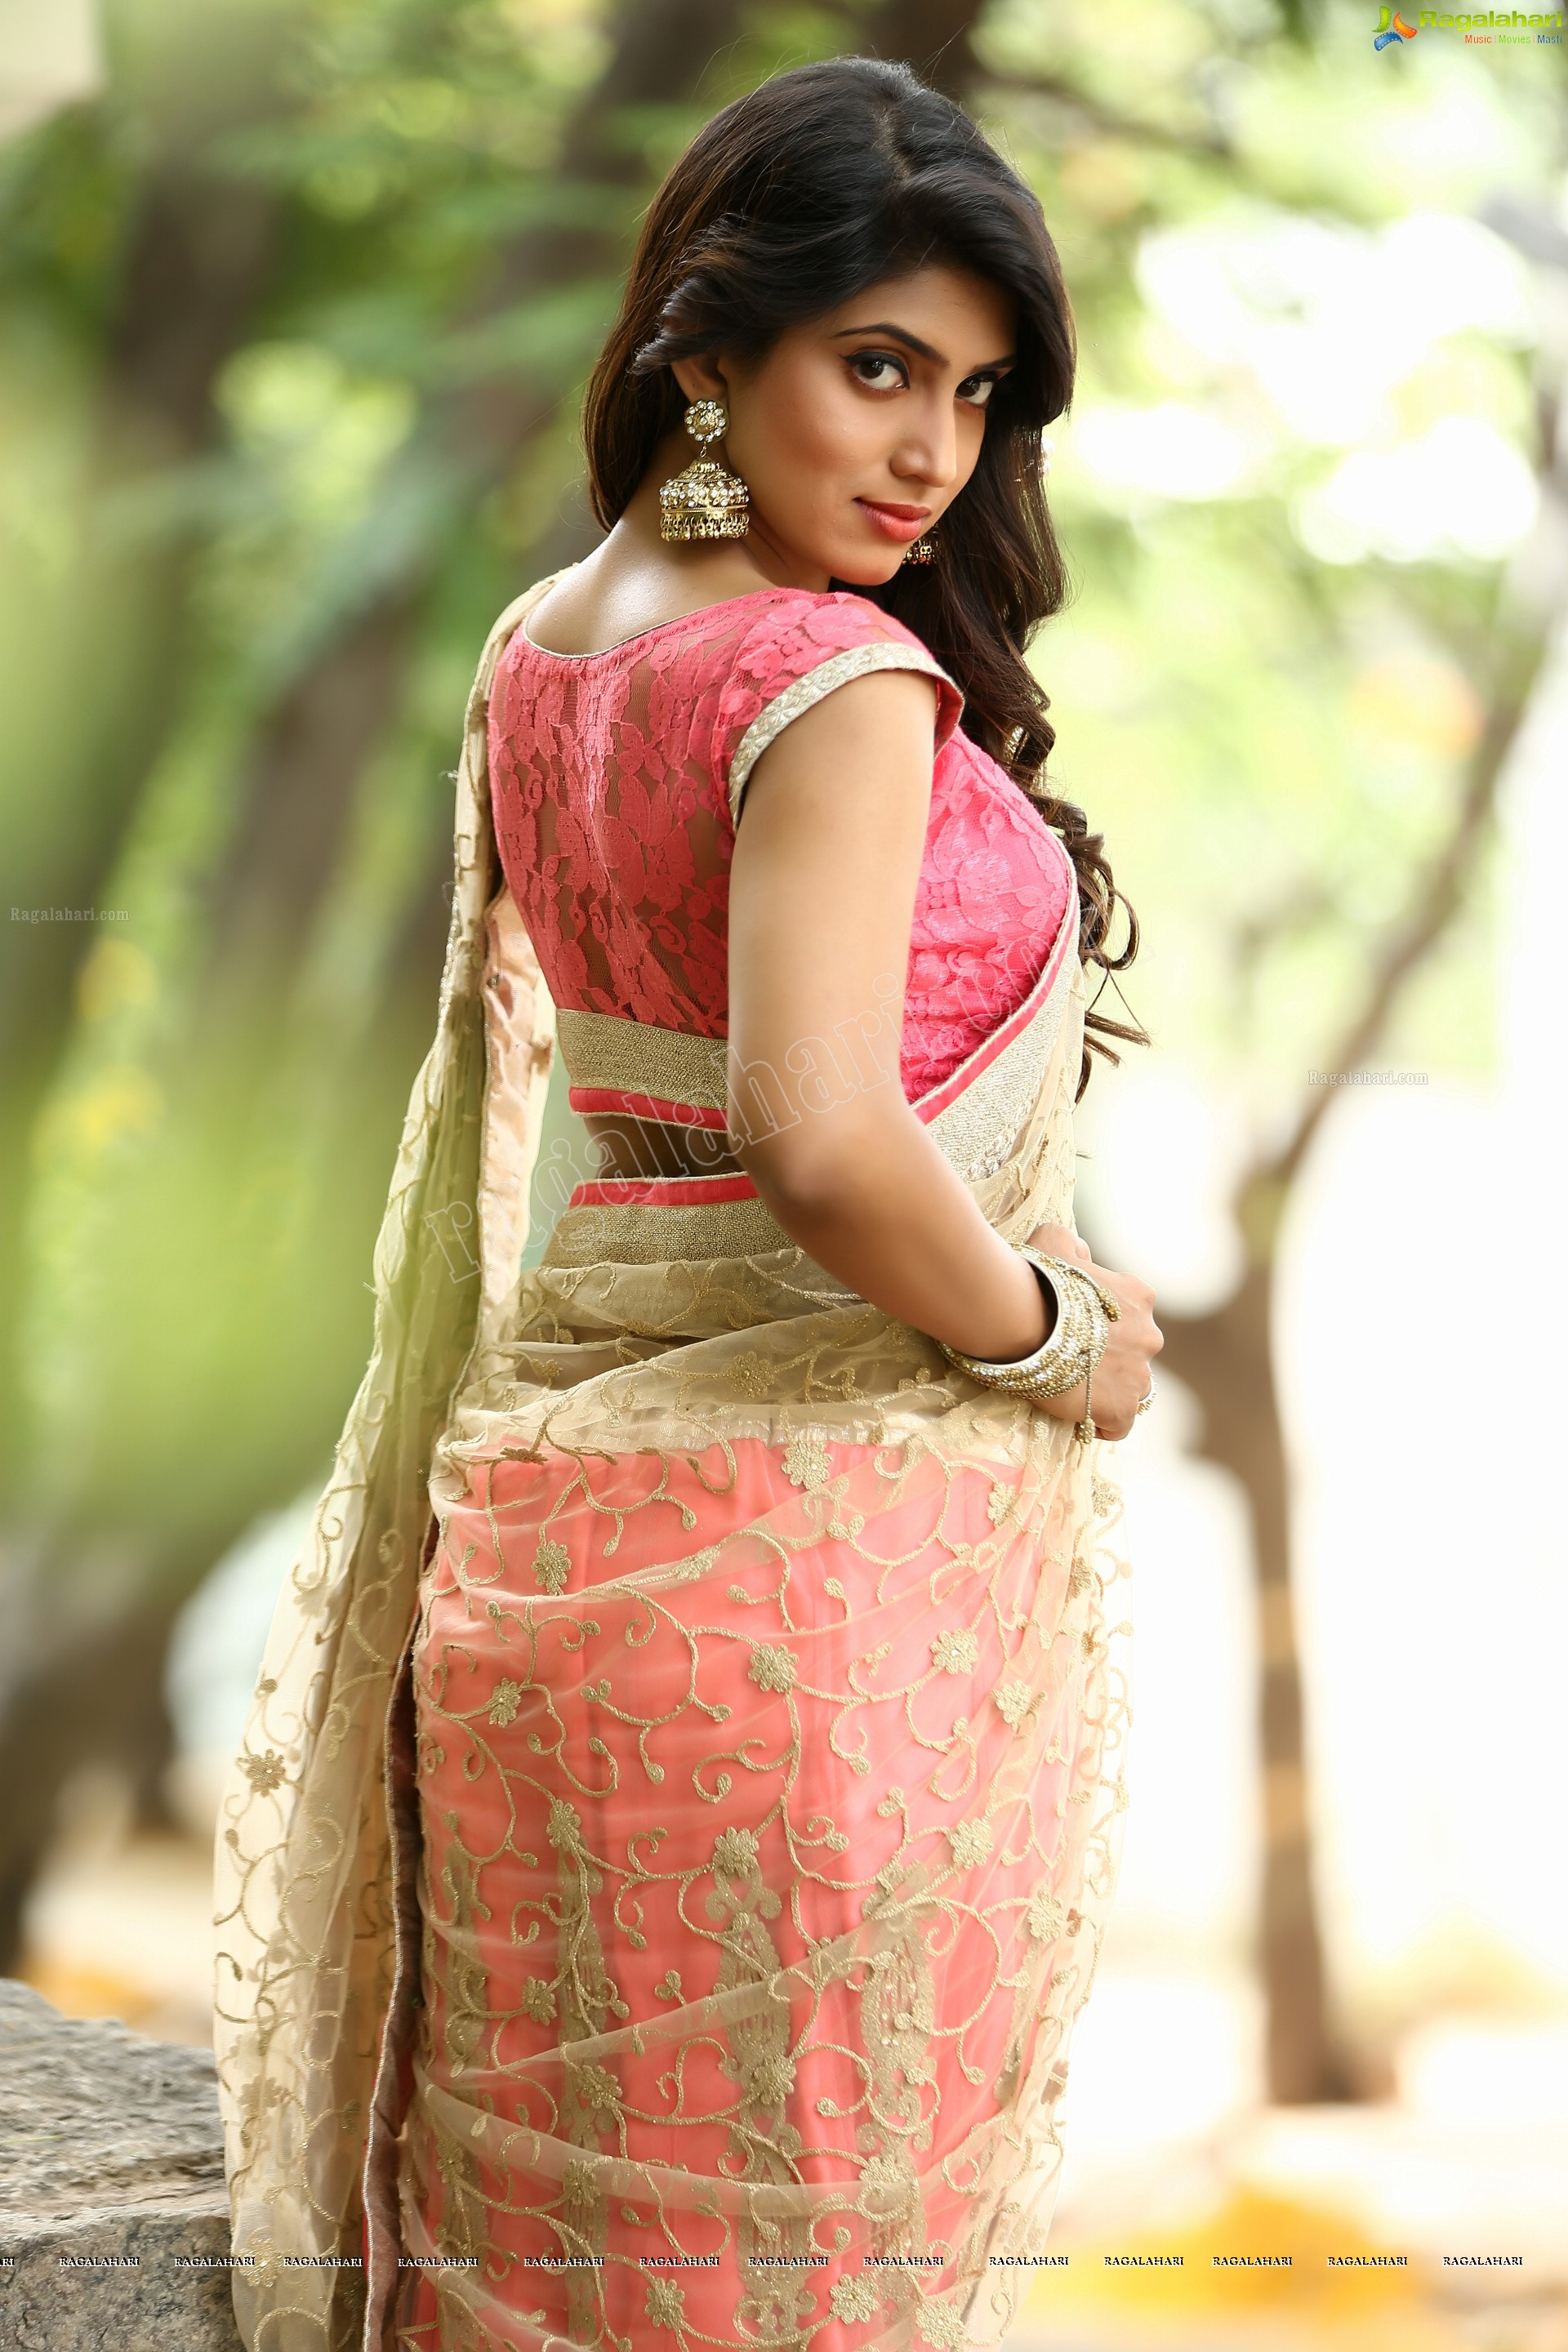 image Shag for serial actress rachitha